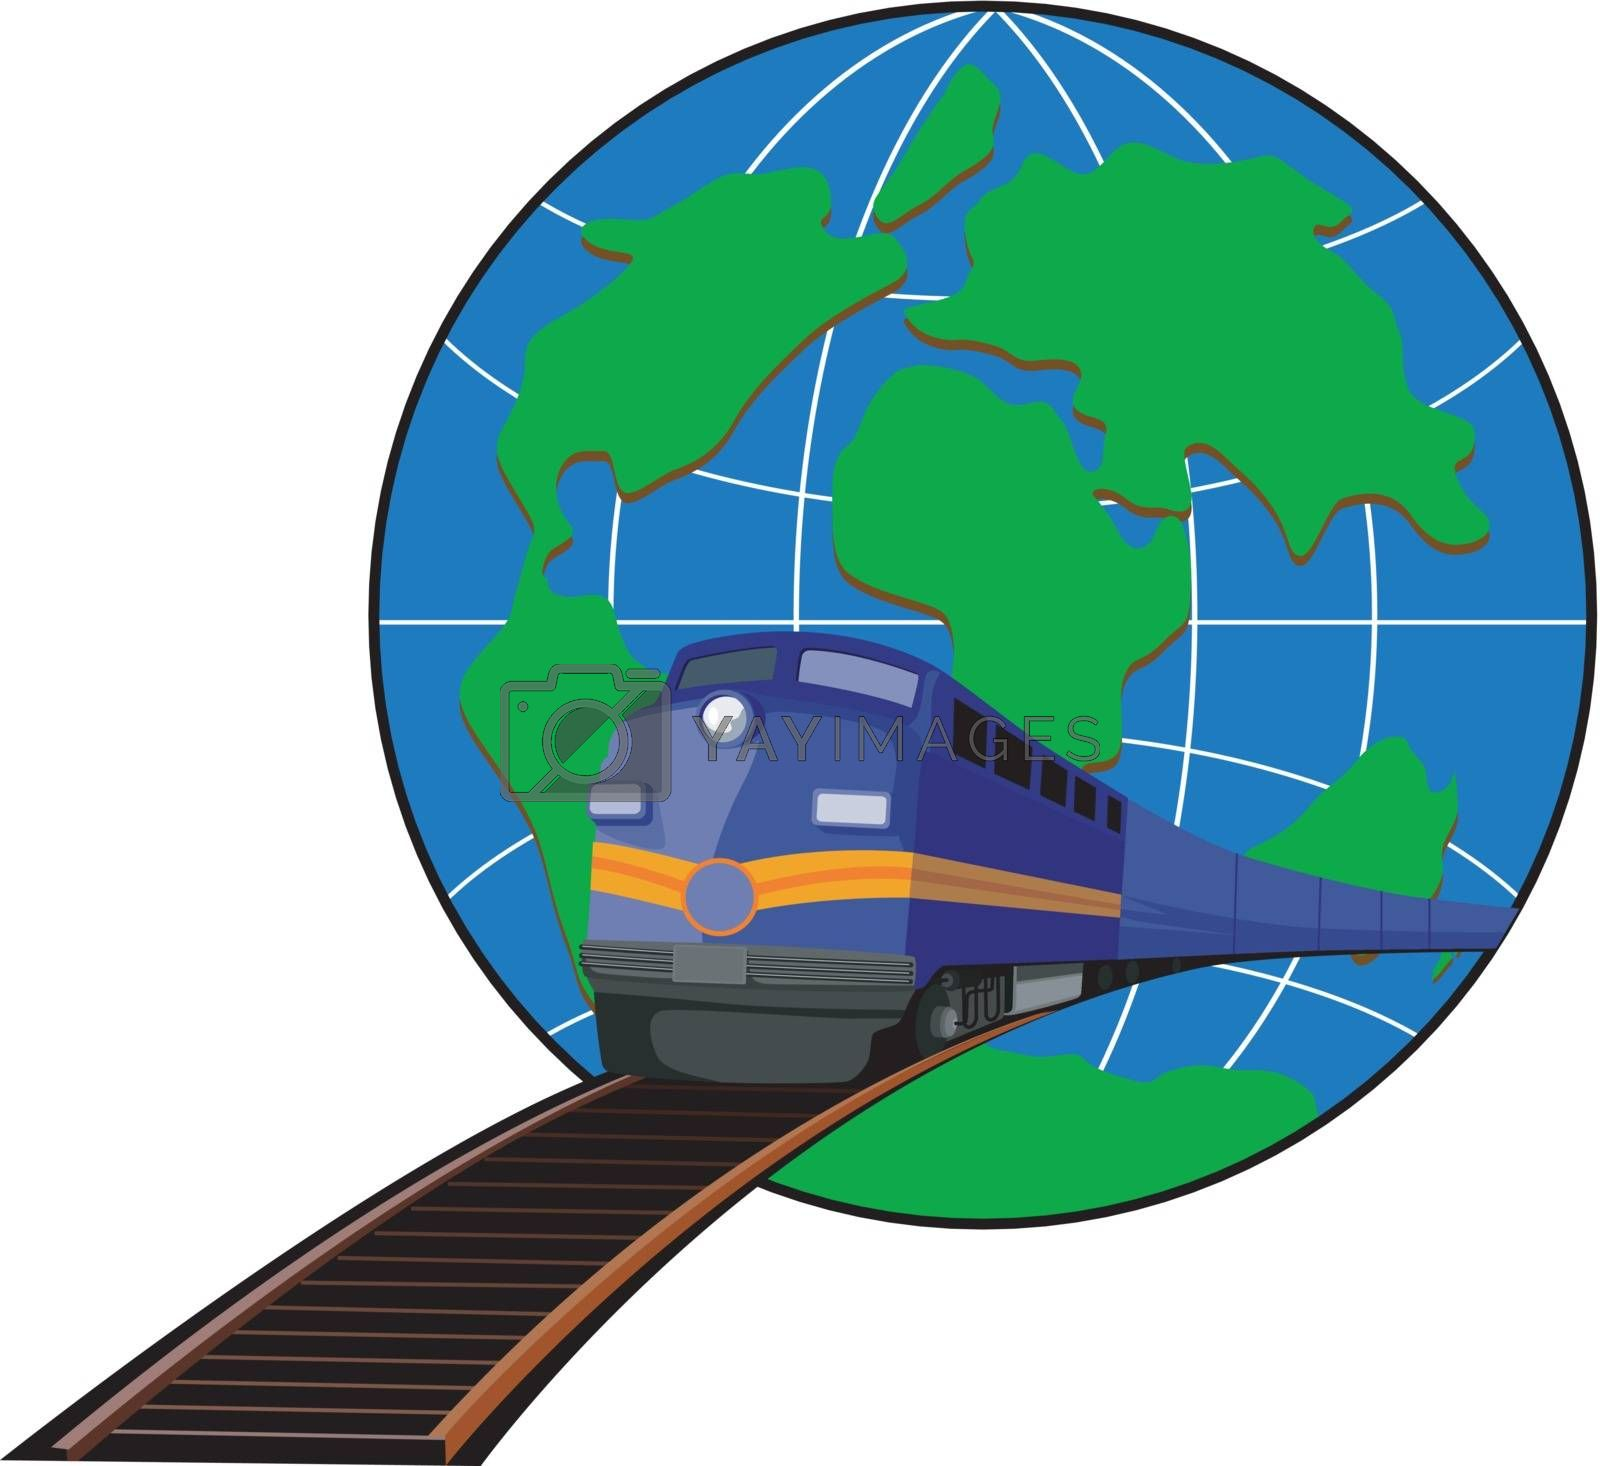 Illustration of a train heading front with globe in the background done in retro style.